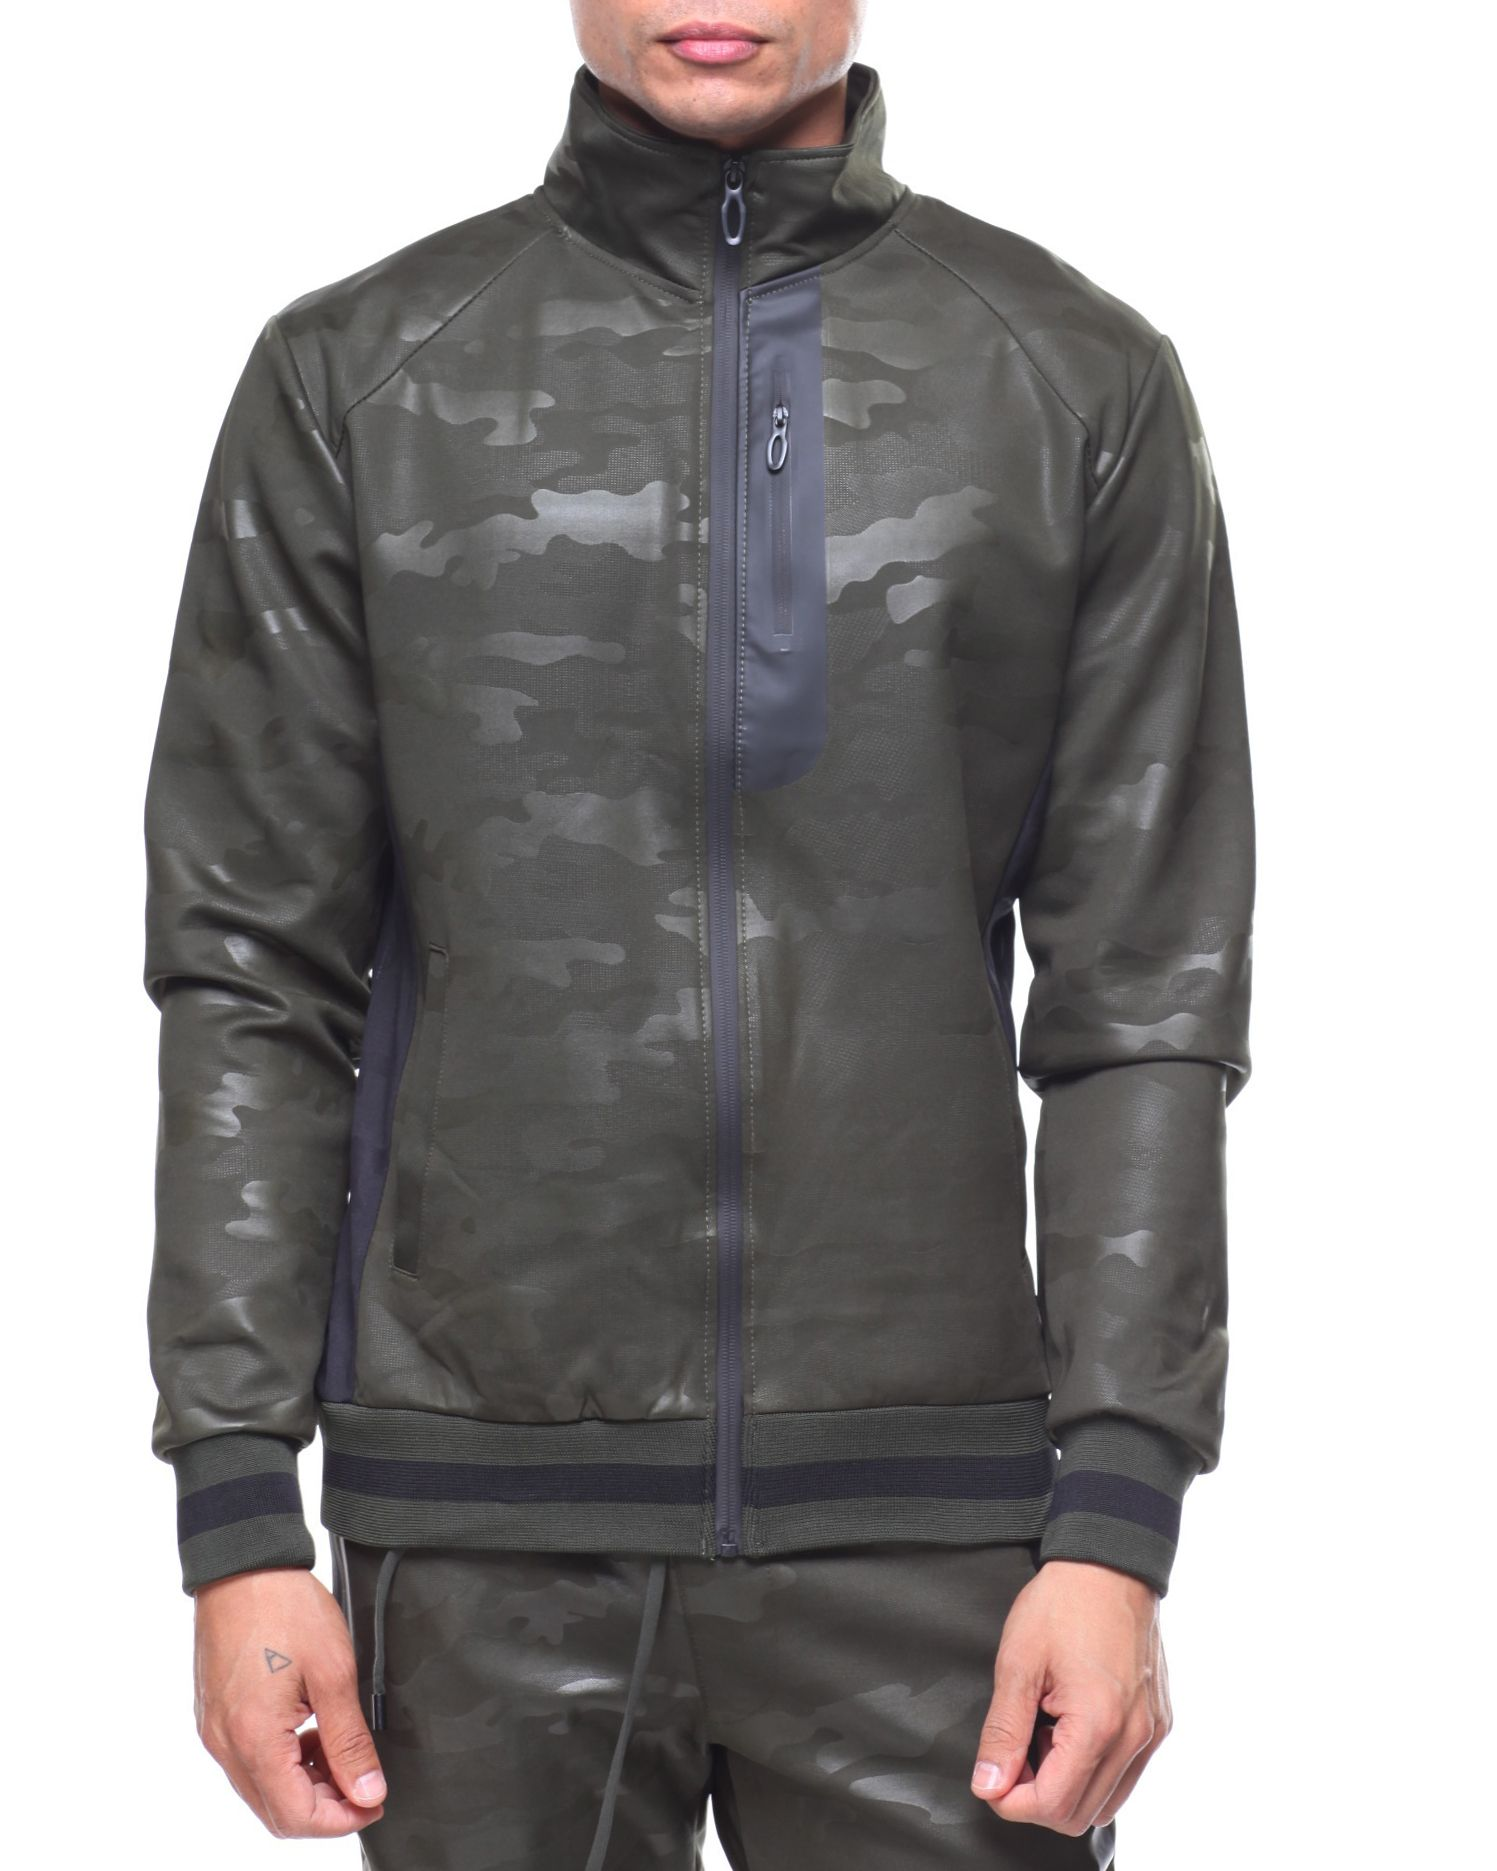 Camo Jacquard Track Jacket Men S Outerwear From Buyers Picks Find Buyers Picks Fashion More At Drjays Com Jackets Mens Jackets Track Jackets [ 1871 x 1497 Pixel ]